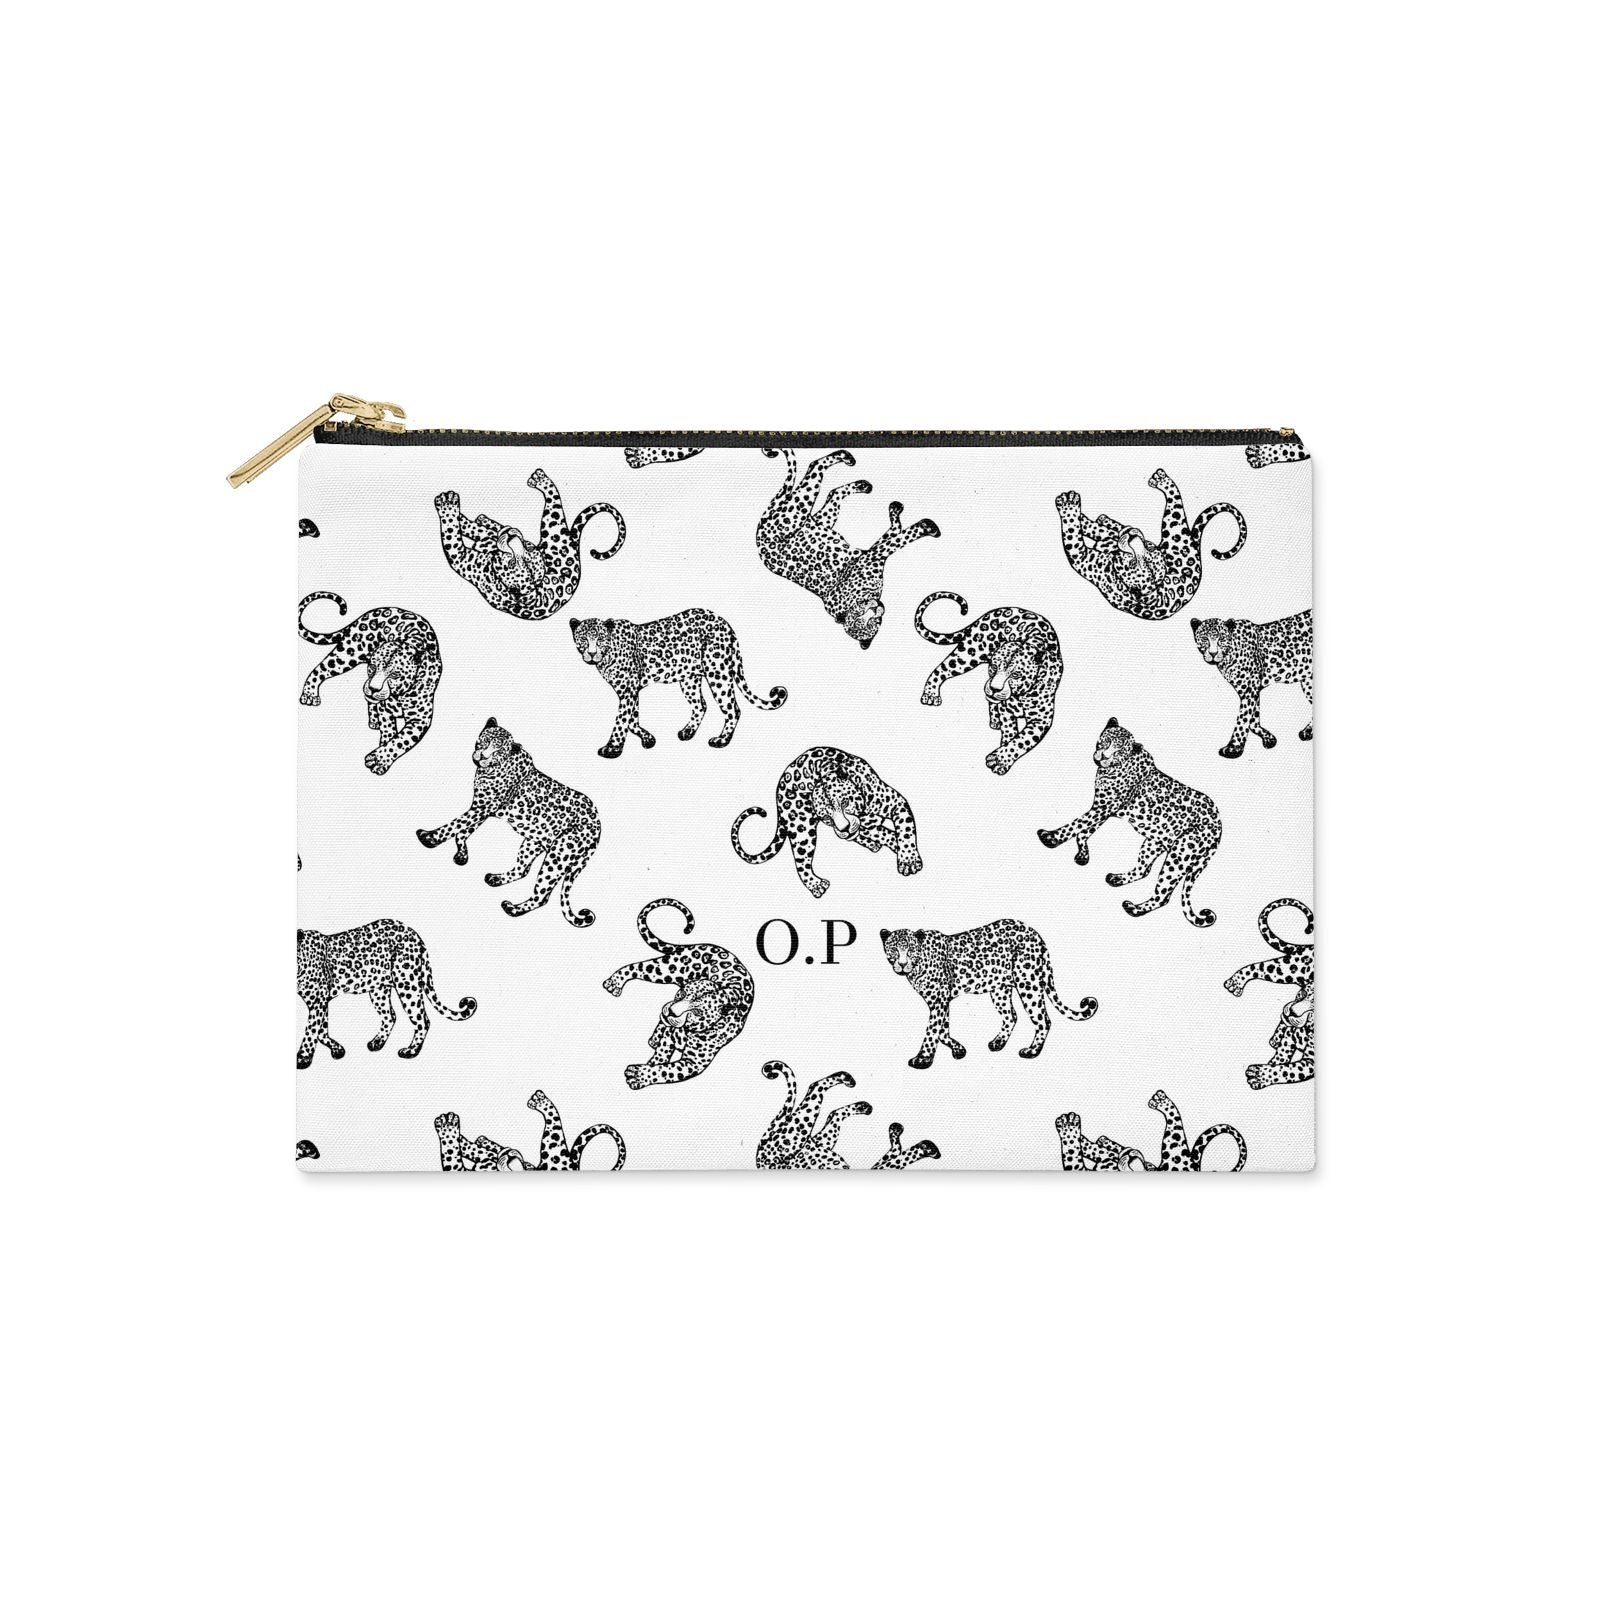 Monochrome Leopard Print Personalised Clutch Bag Zipper Pouch